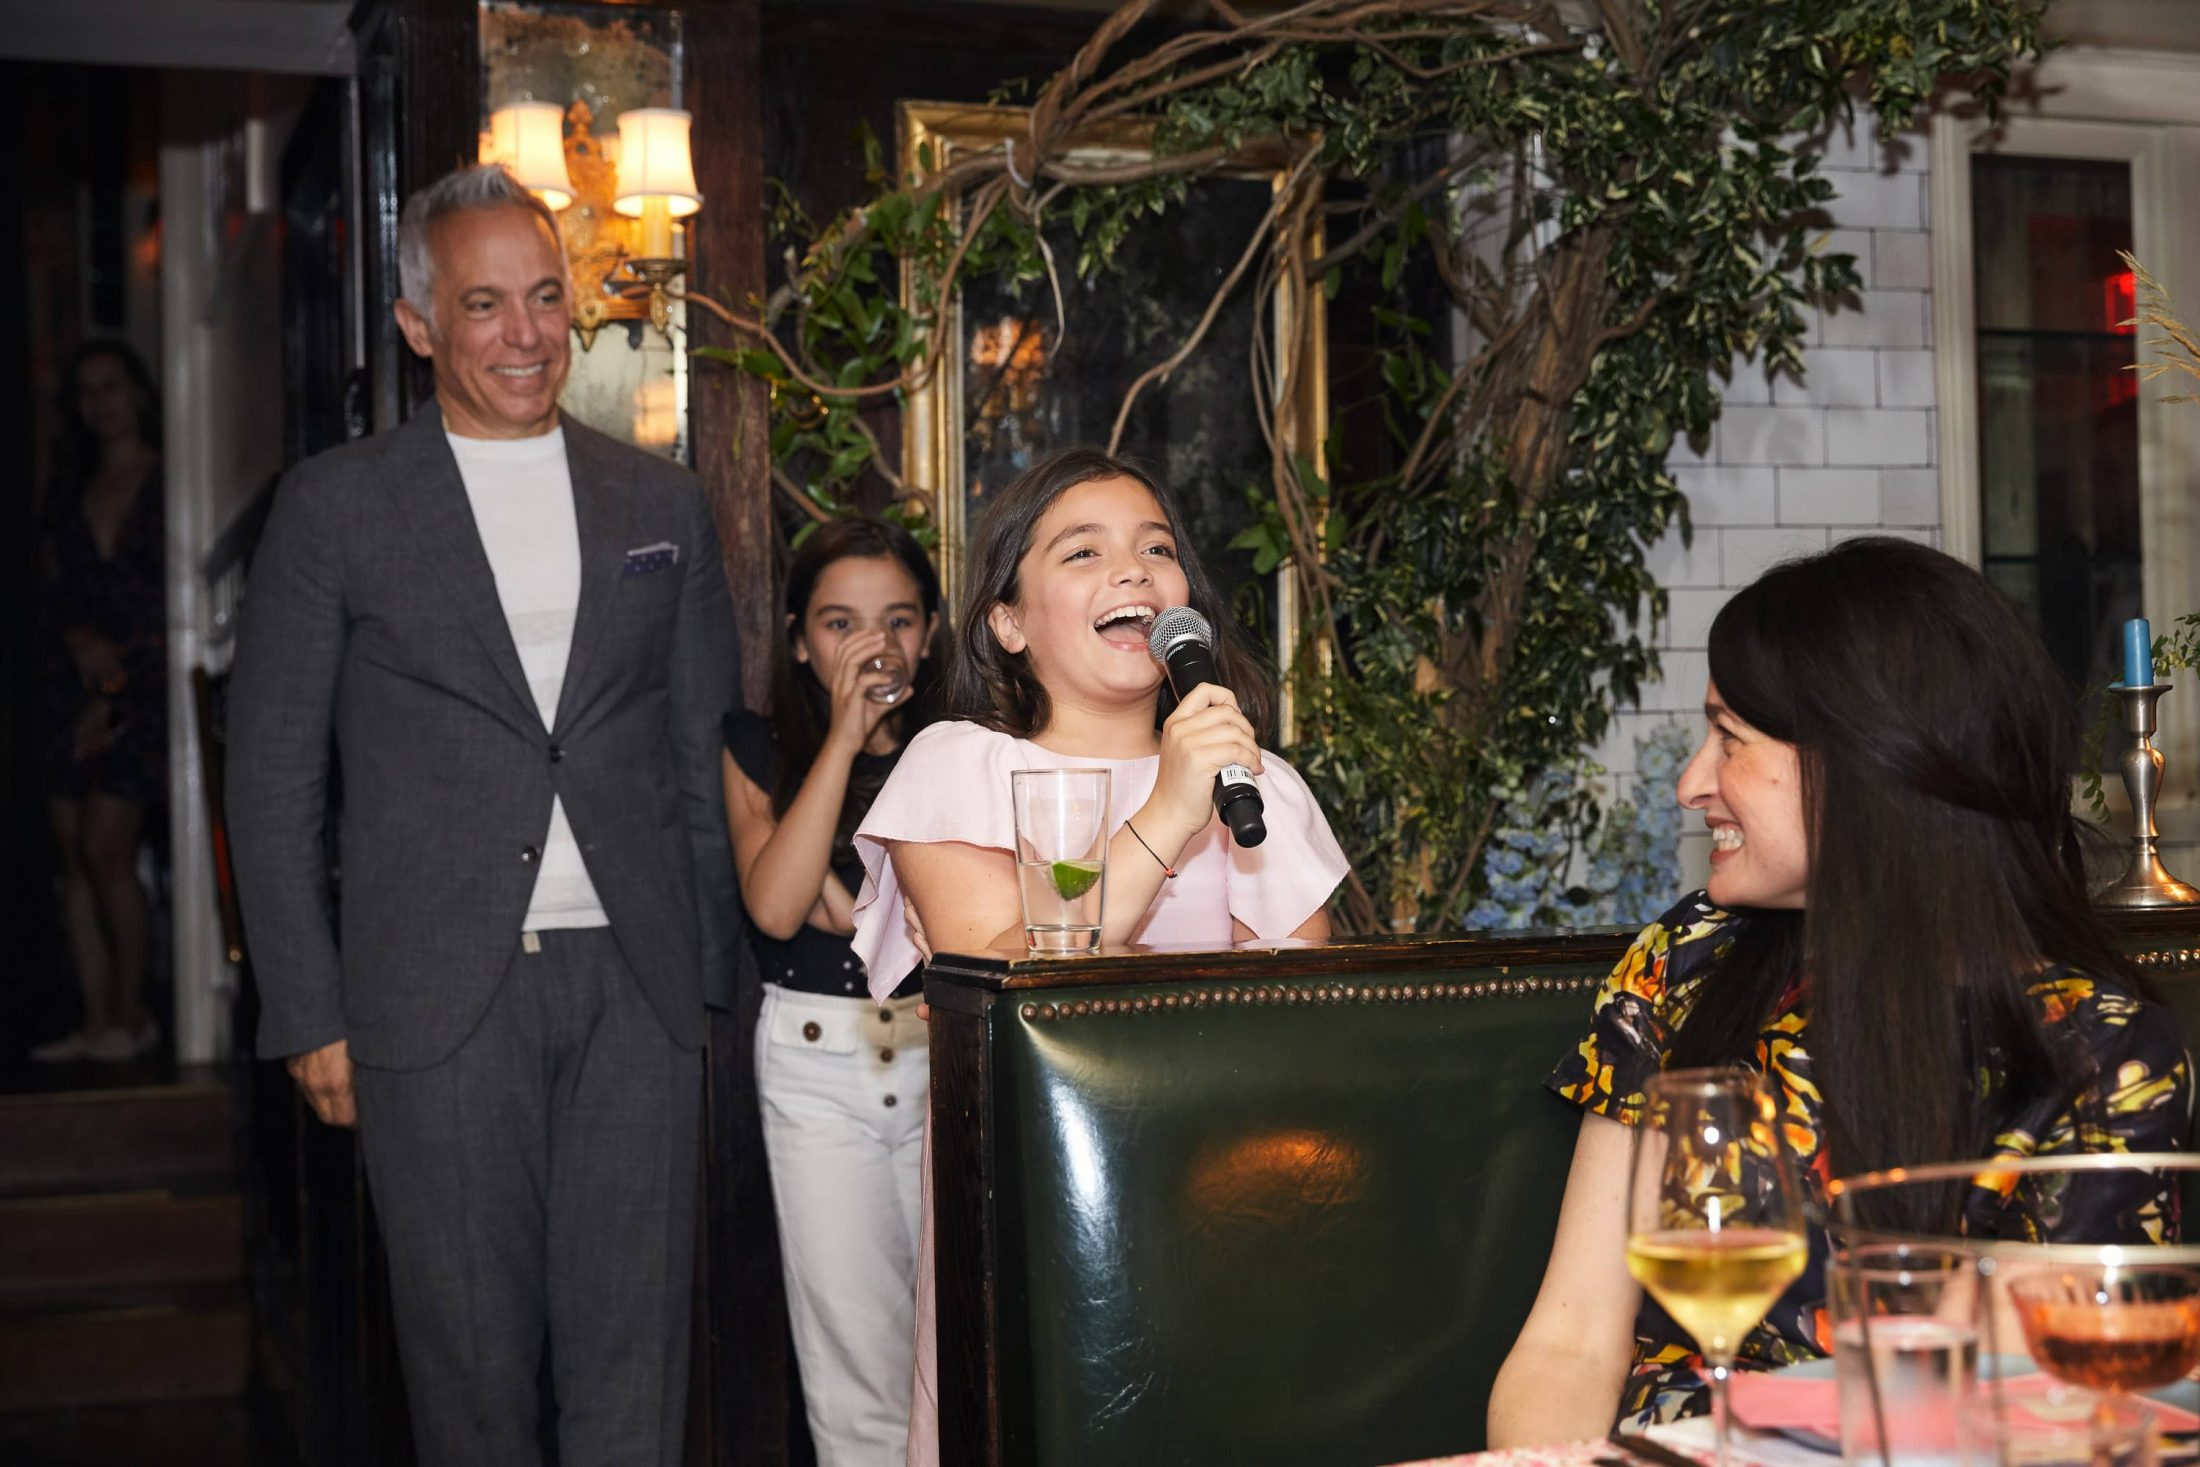 Younger guests at this 40th surprise birthday party at Beatrice Inn in West Village | Photo by Darren Ornitz